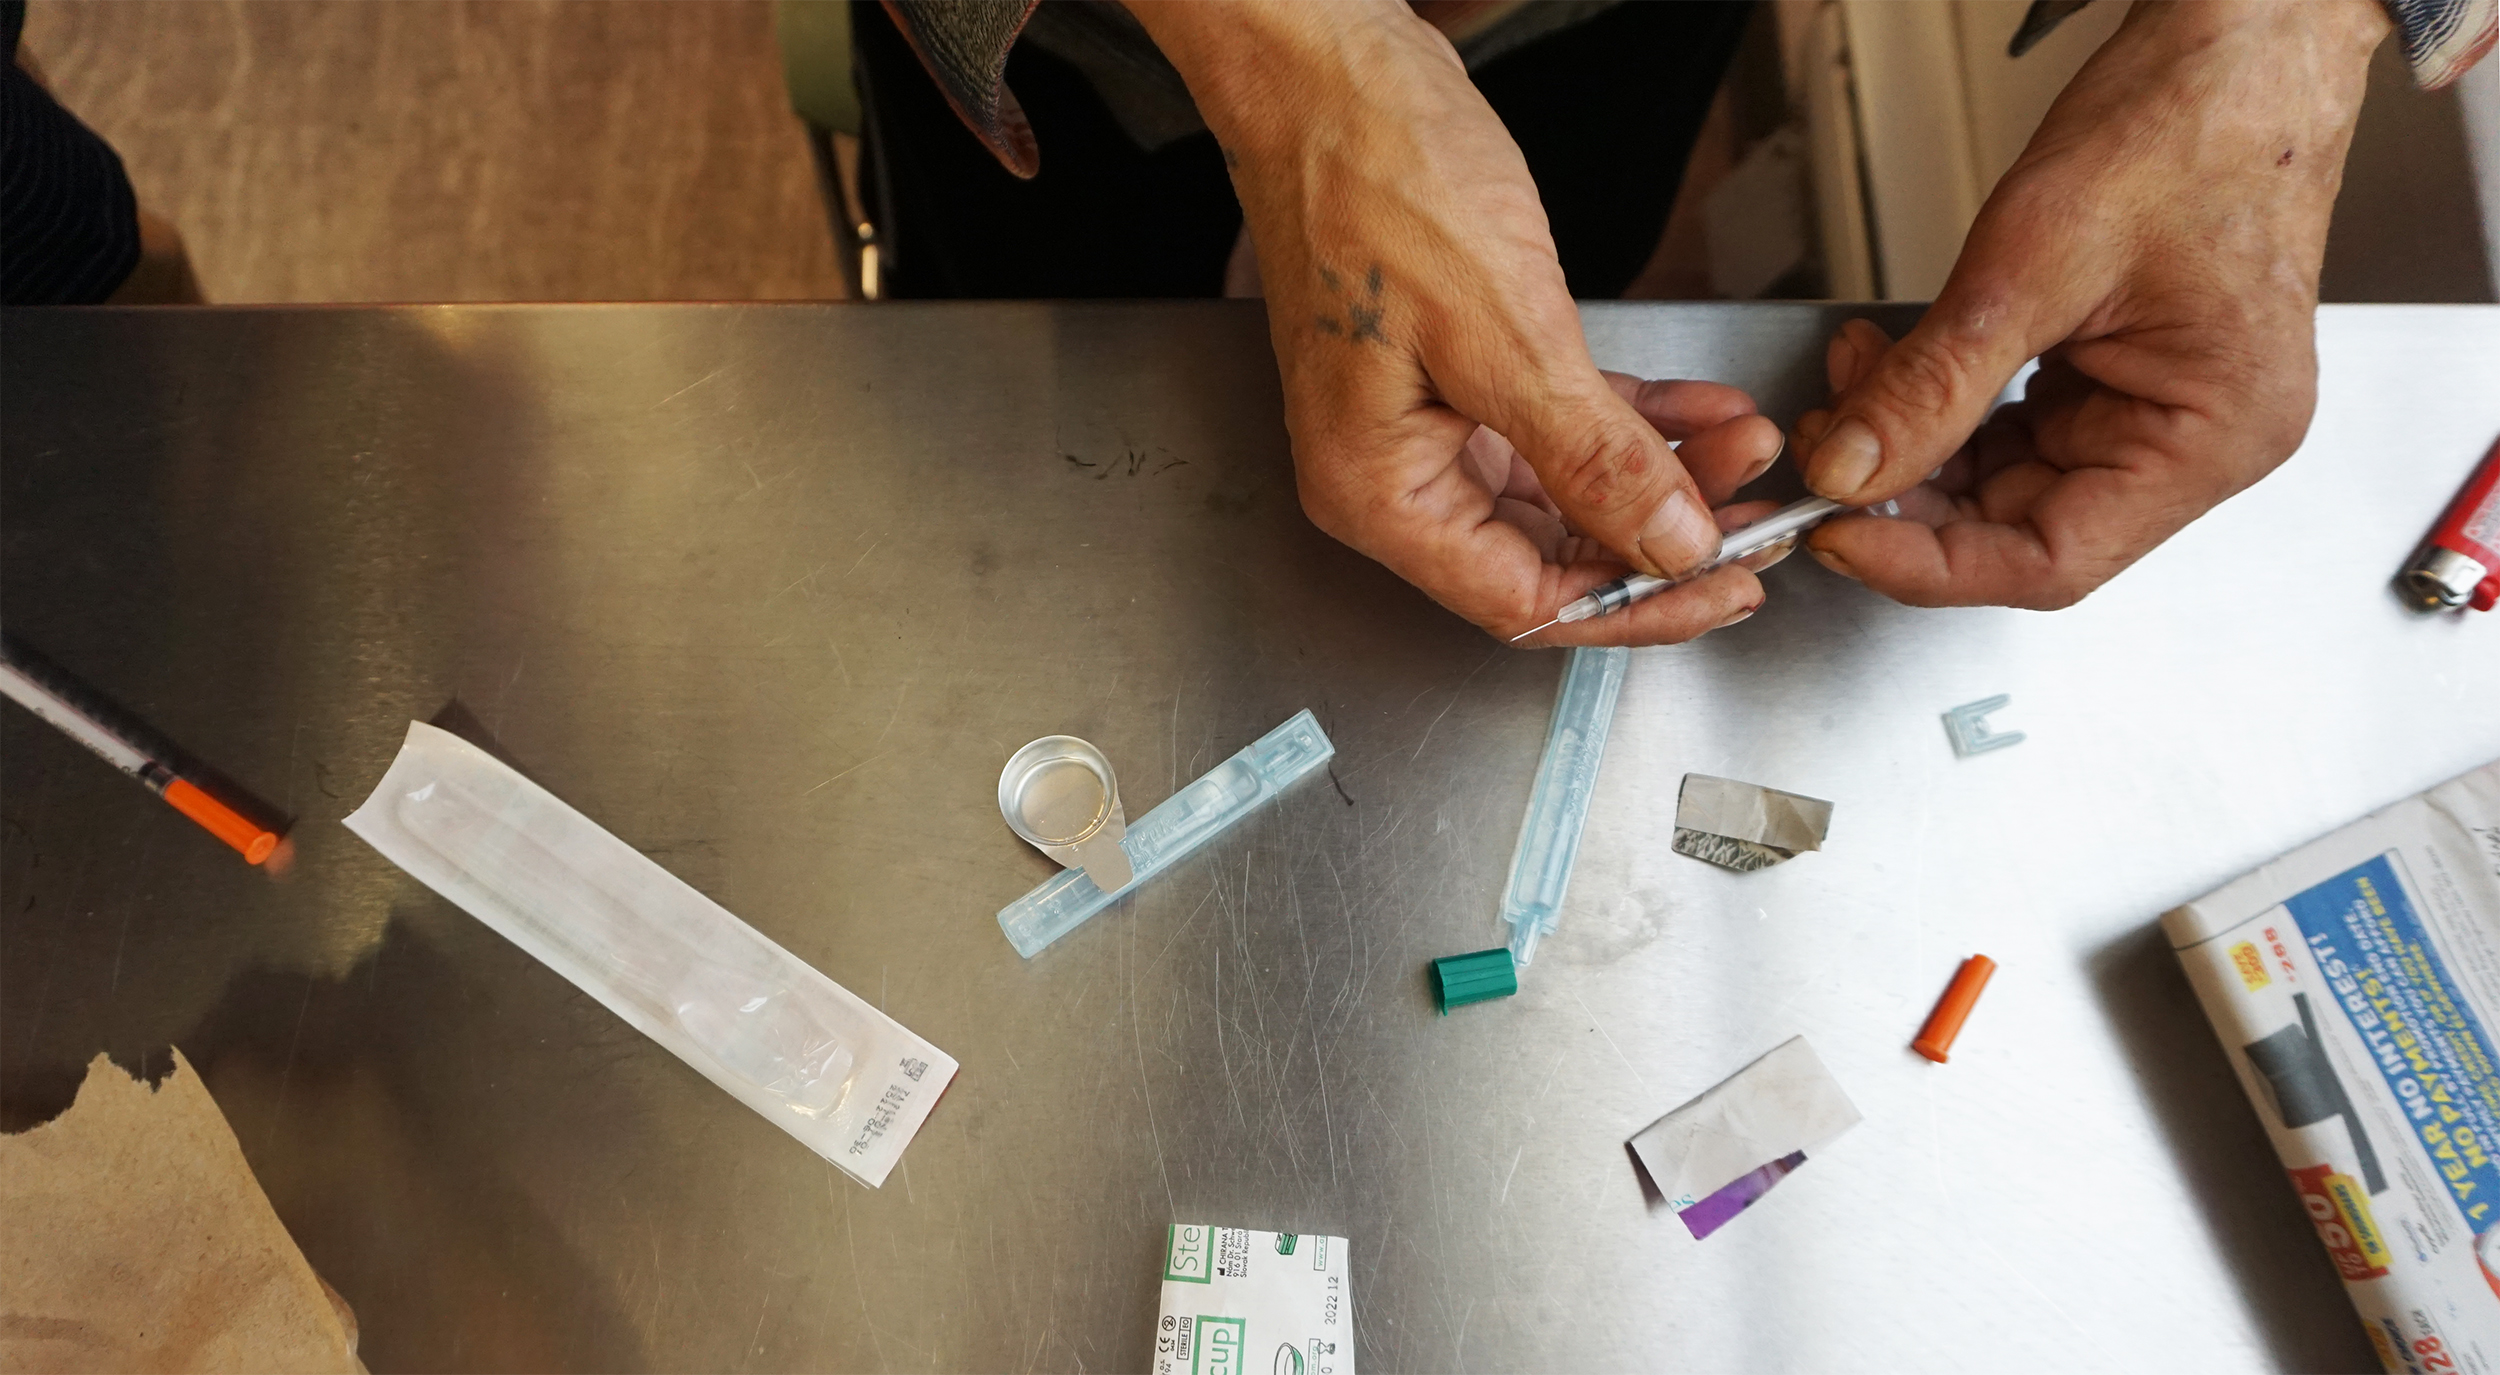 San Francisco may soon open nation's first supervised drug injection center